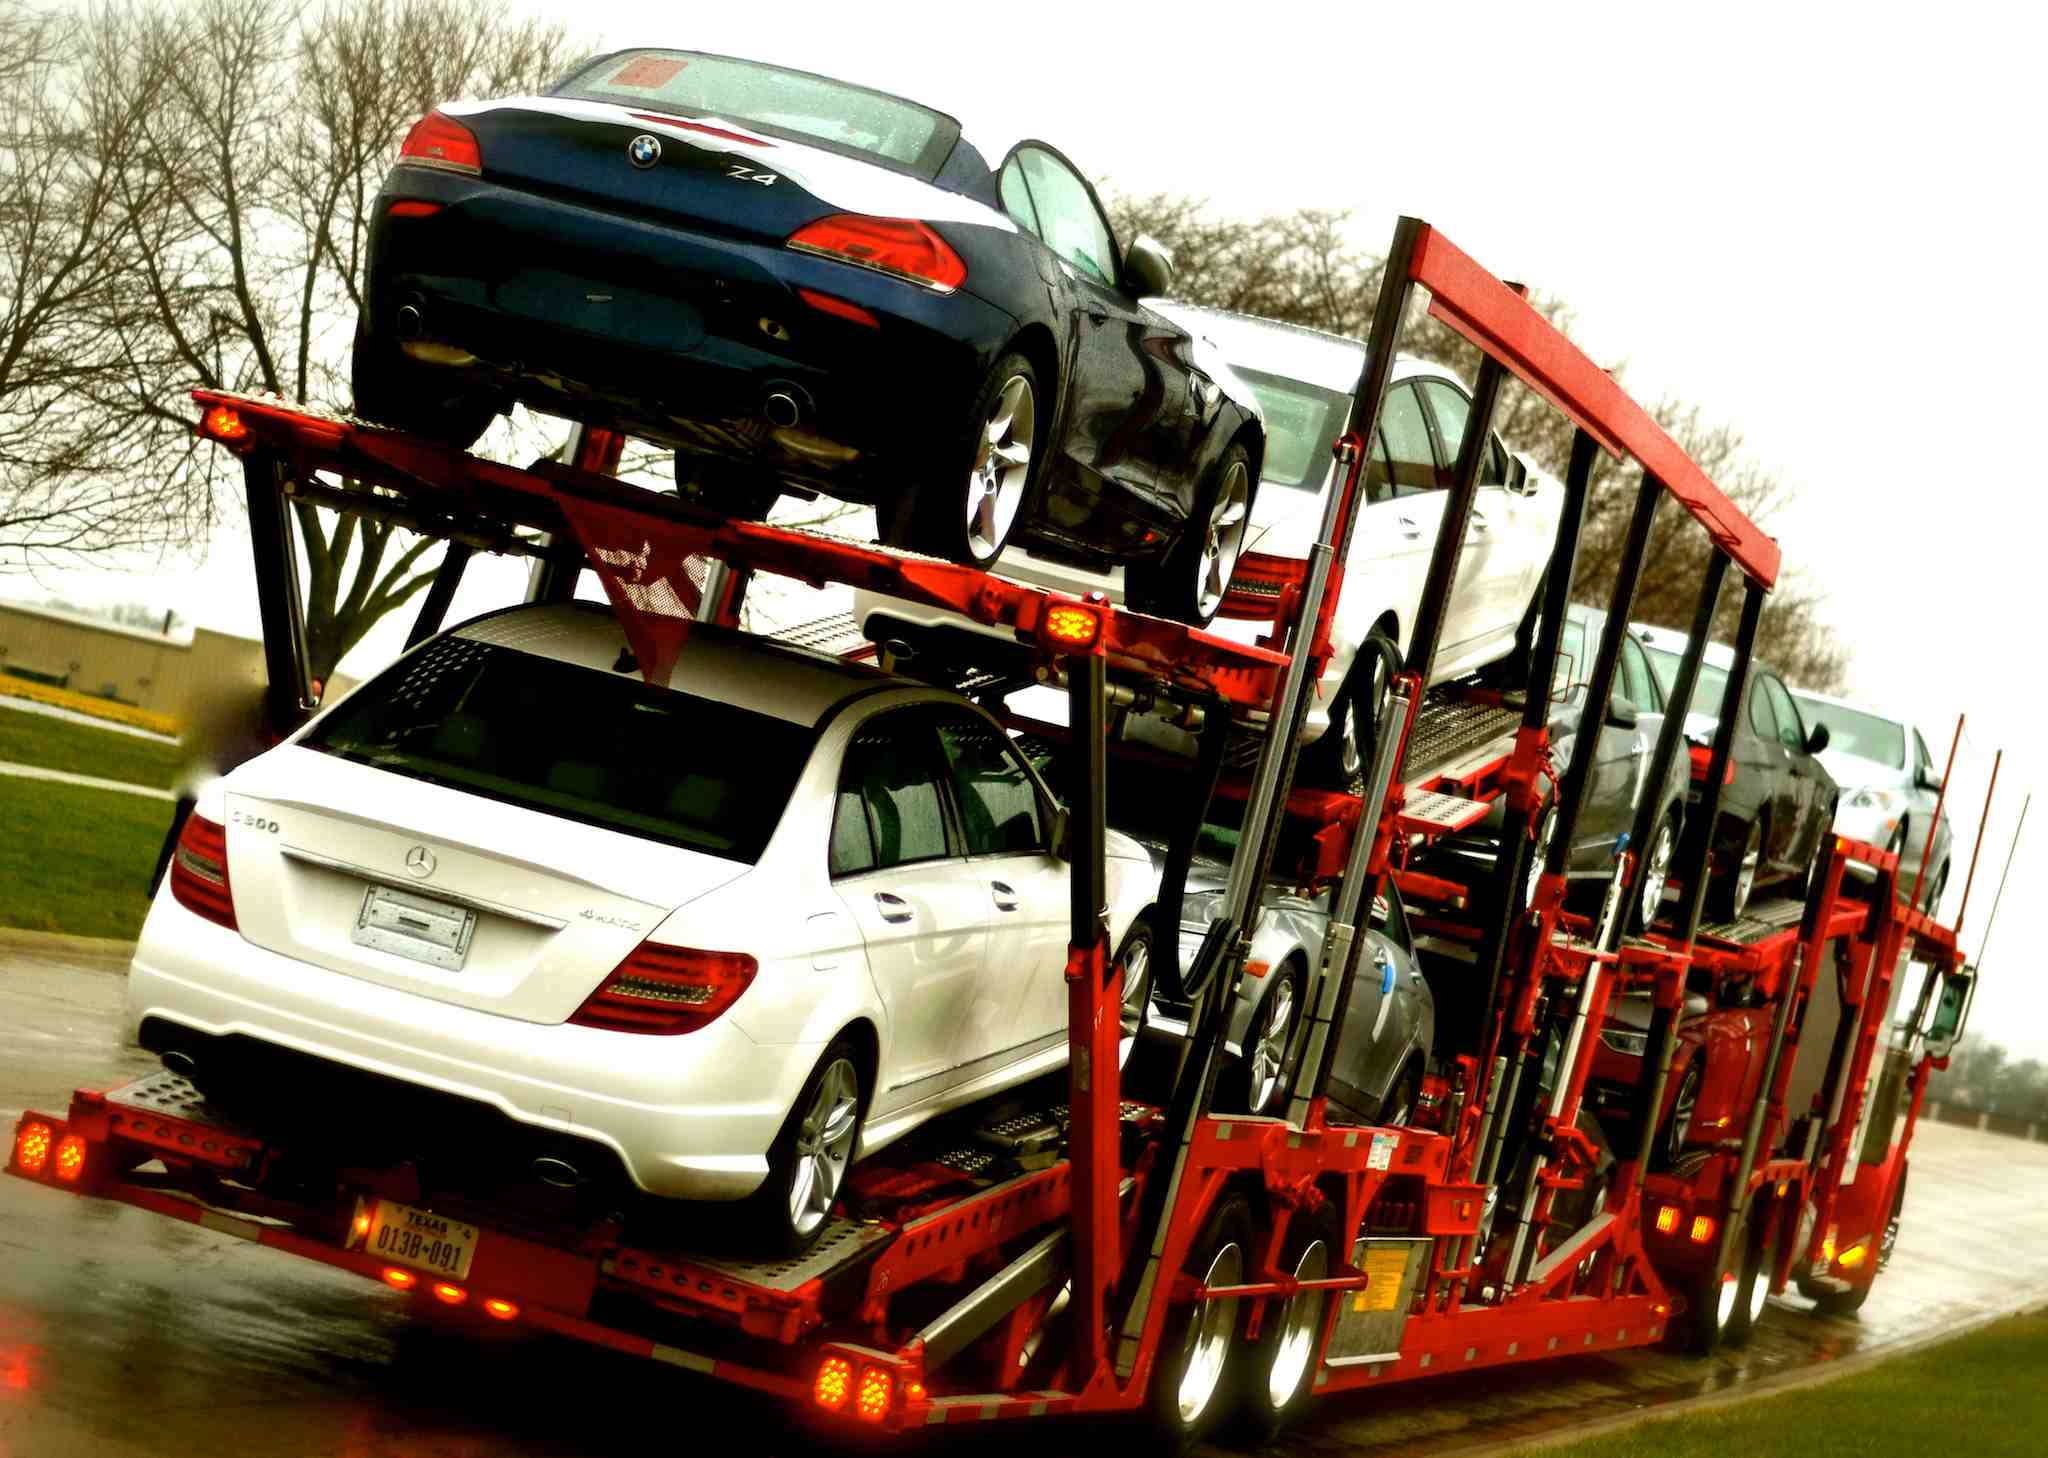 Vehicle Transport Quote Interlink Auto Transport  Nationwide Vehicle Transportation